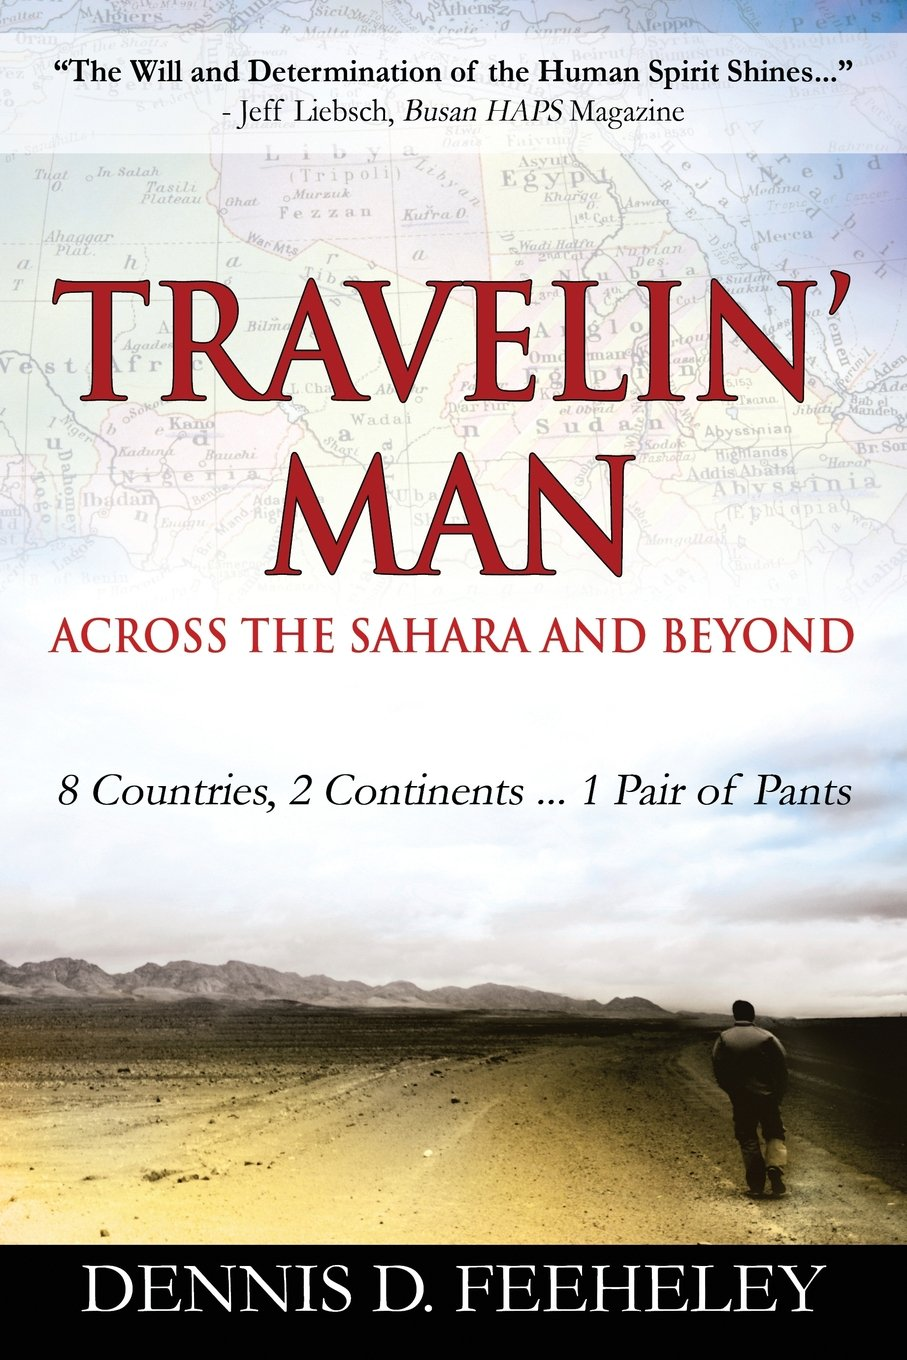 TRAVELIN' MAN Across the Sahara and Beyond: 8 Countries, 2 Continents...1 Pair of Pants pdf